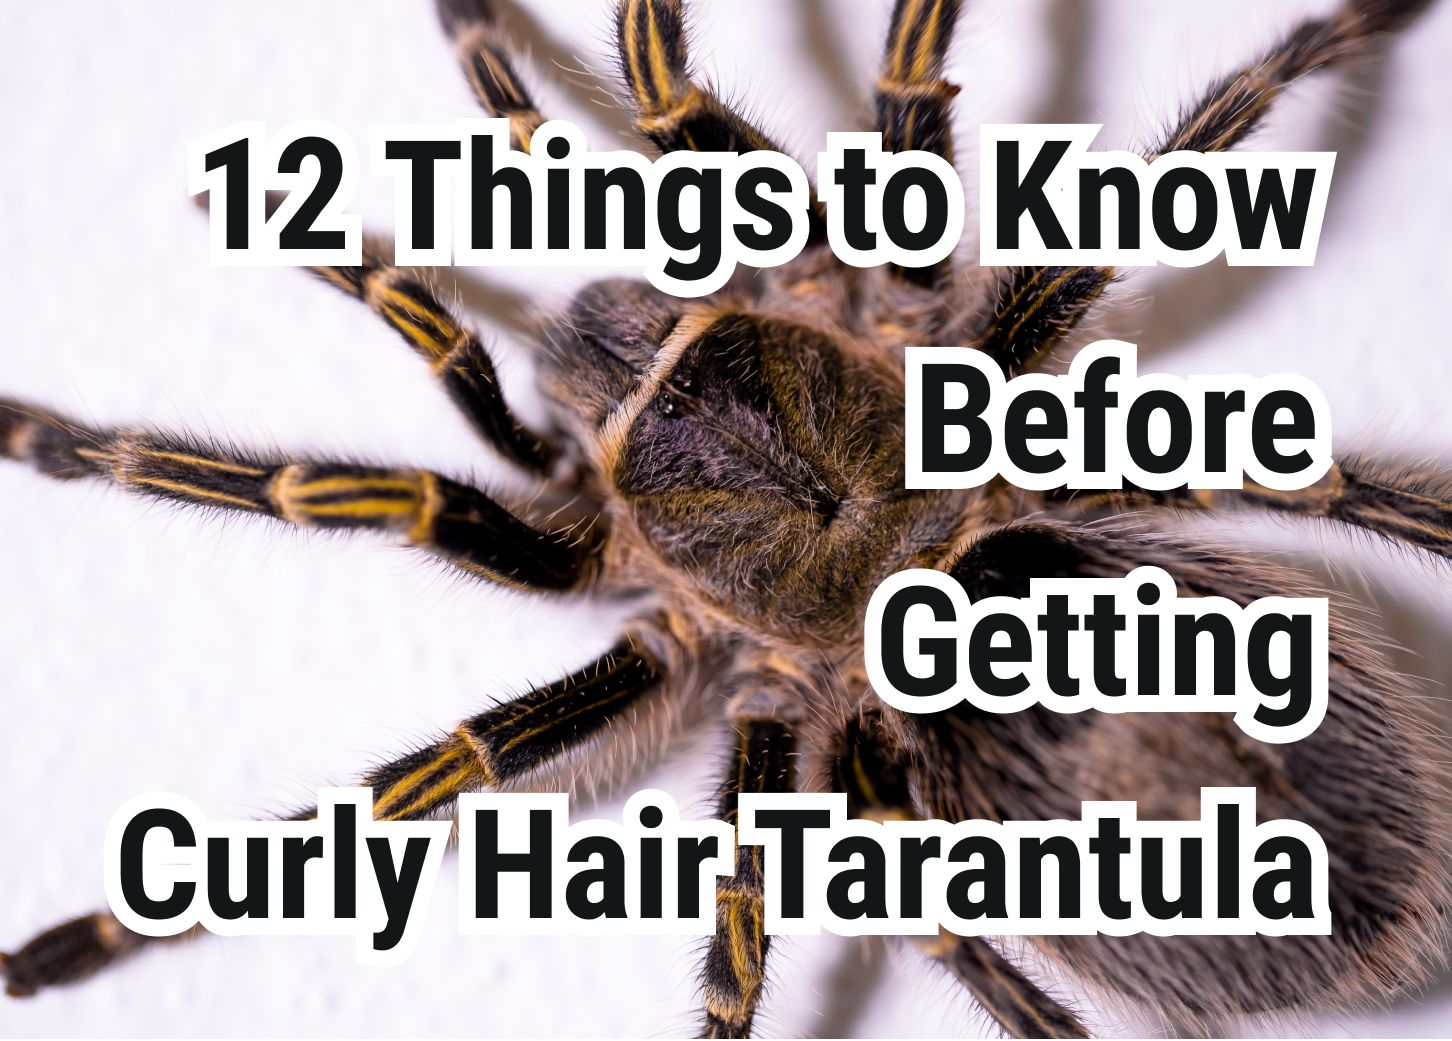 12 Important Things to Know Before Getting Curly Hair Tarantula